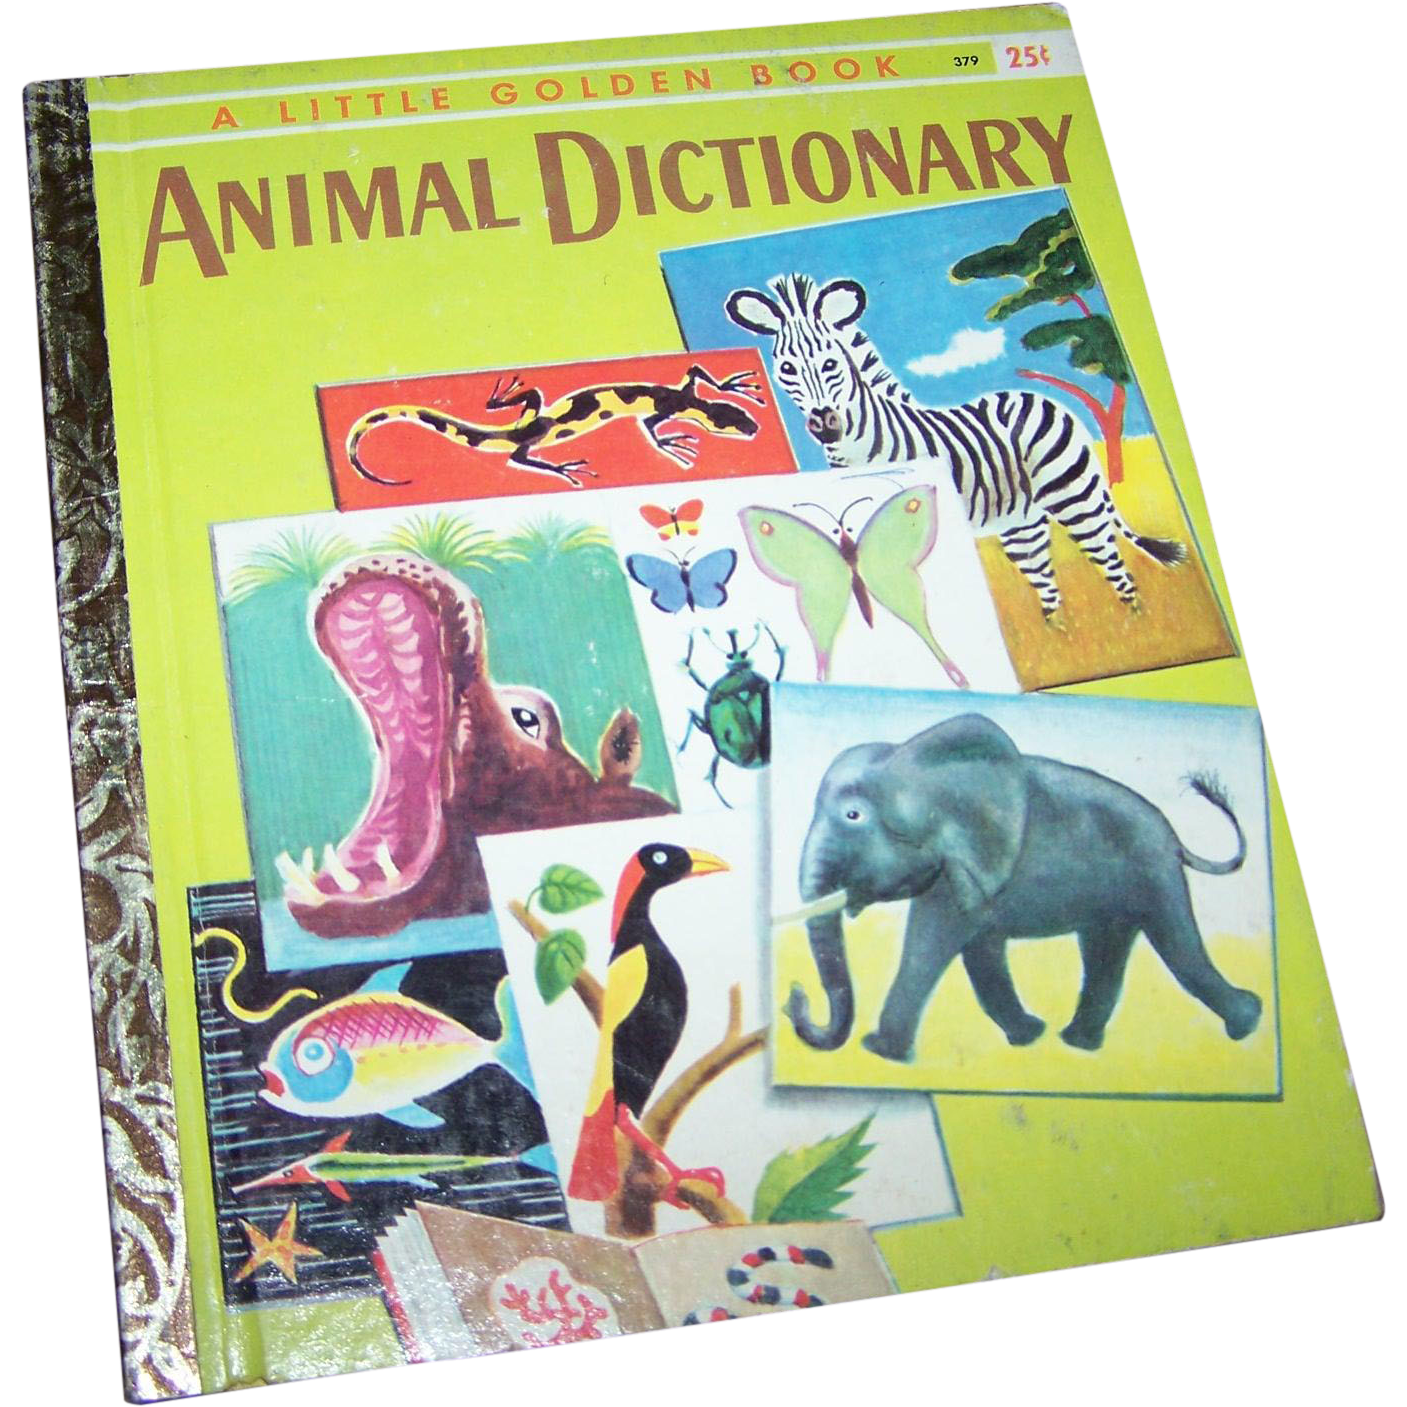 Vintage Children's Book Animal Dictionary Golden Press New York #379